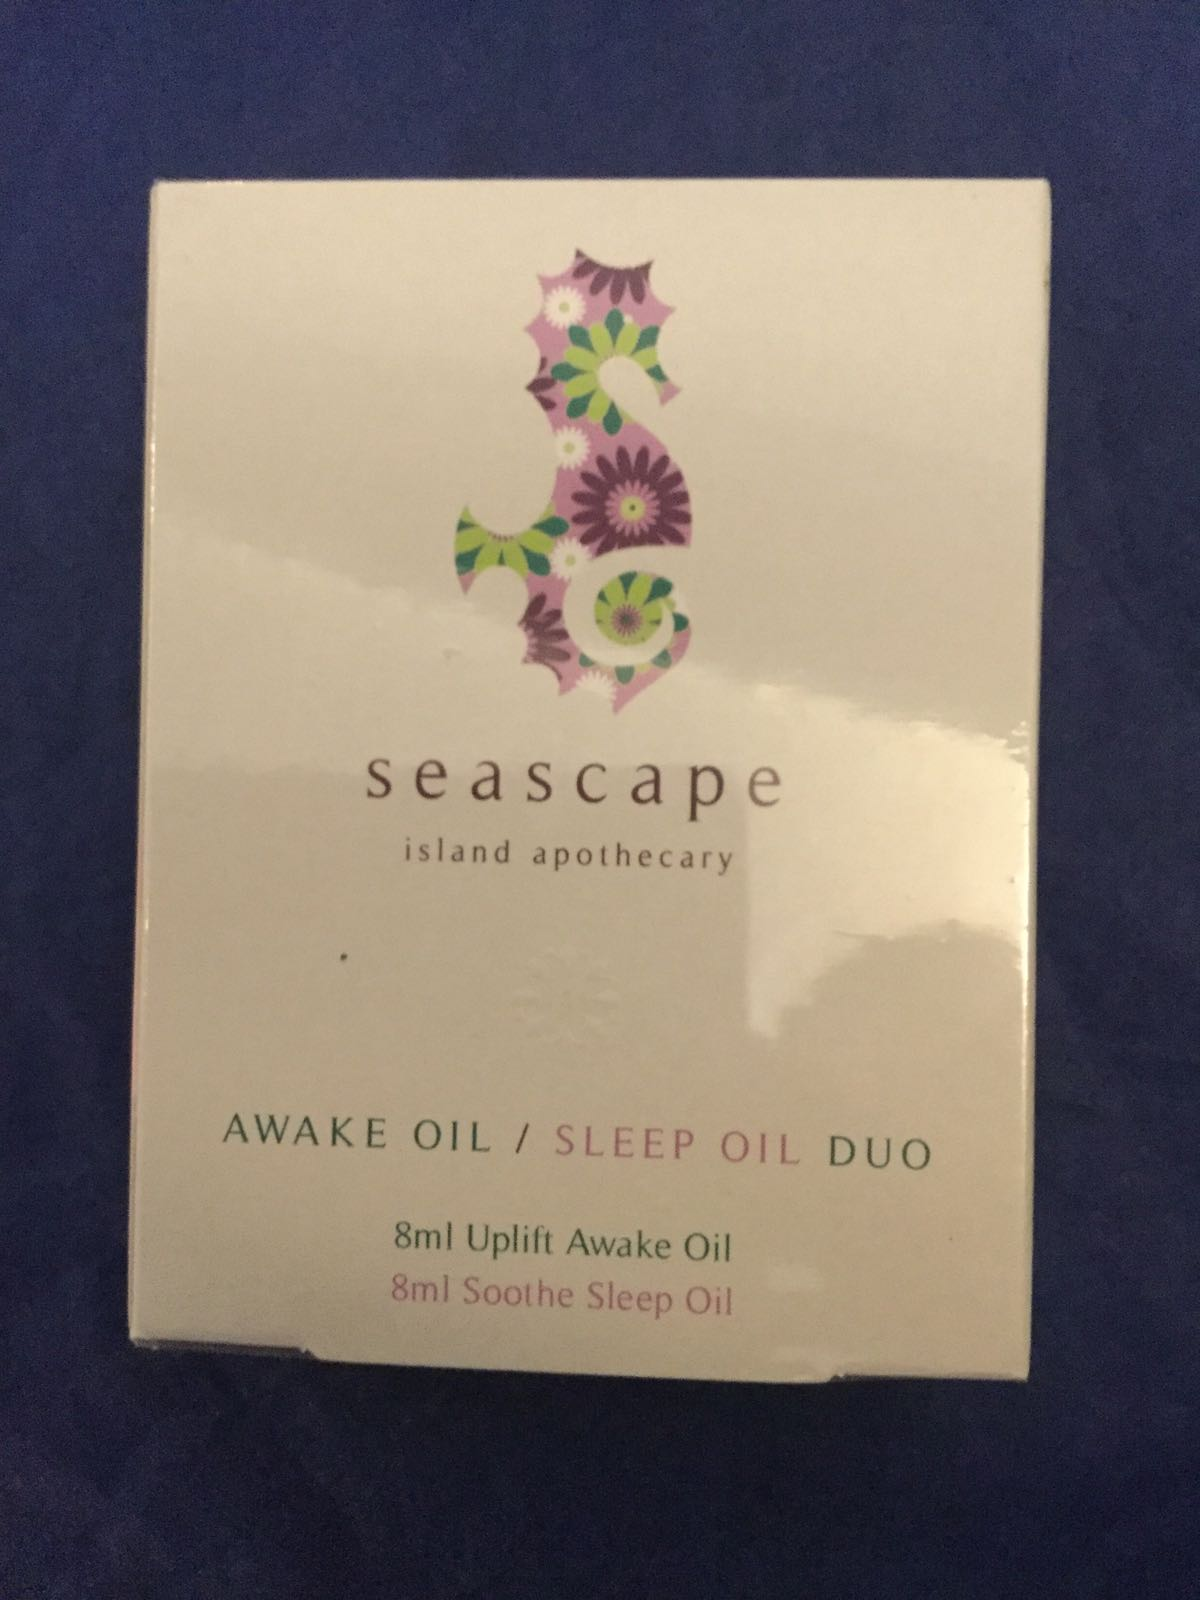 Seascape - Awake/Sleep oil Duo